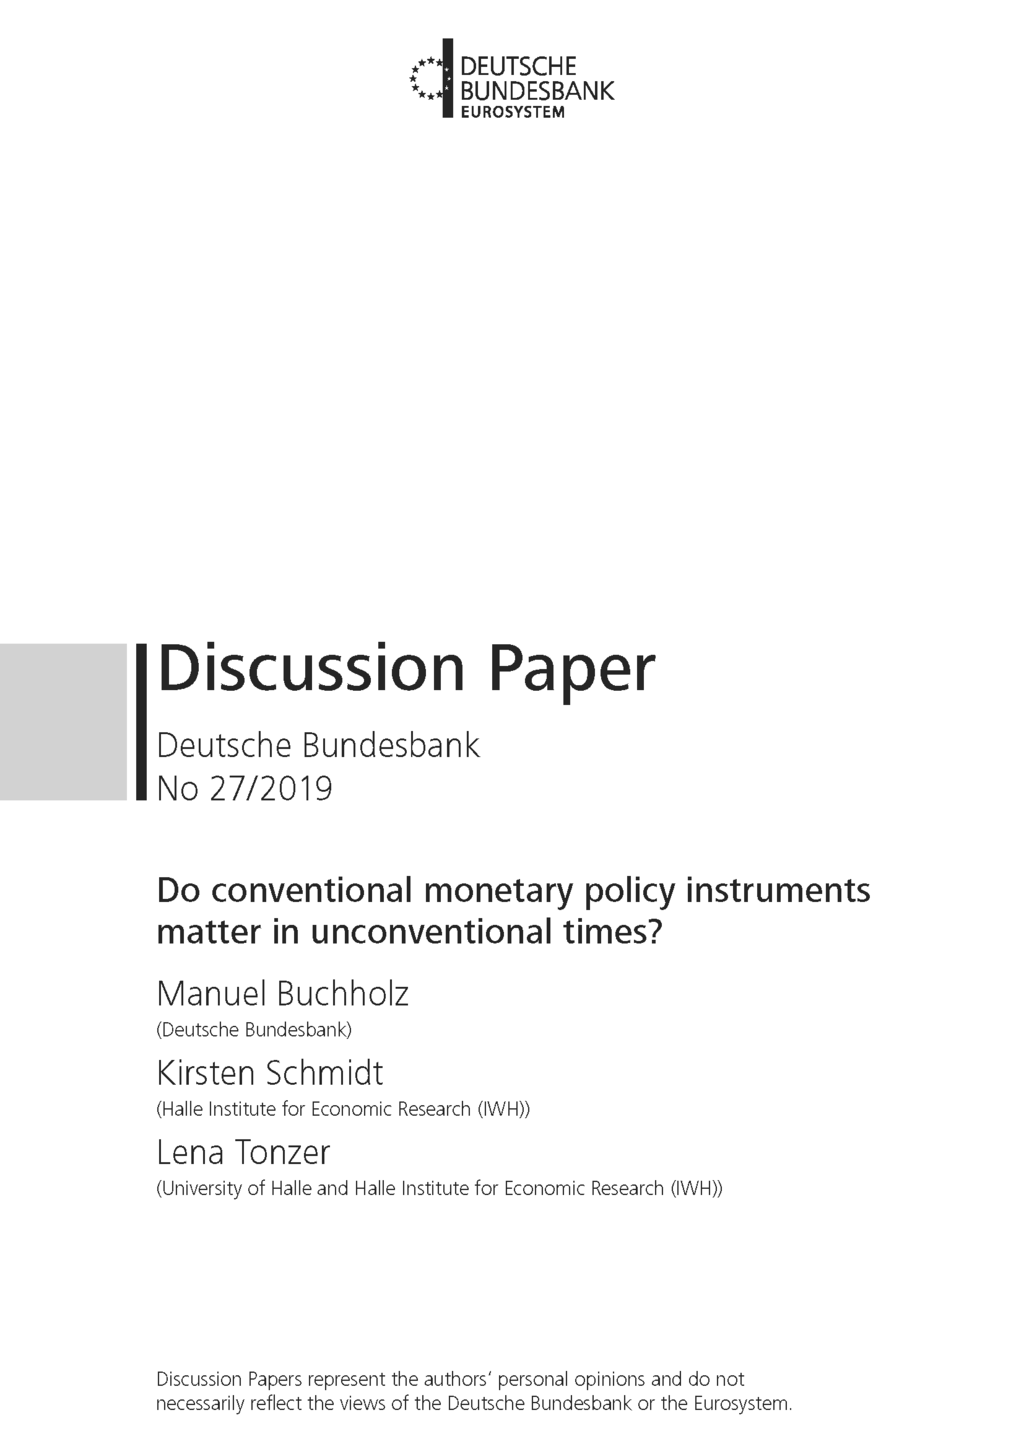 cover_Deutsche-Bundesbank-Discussion-Paper_2019-27.png